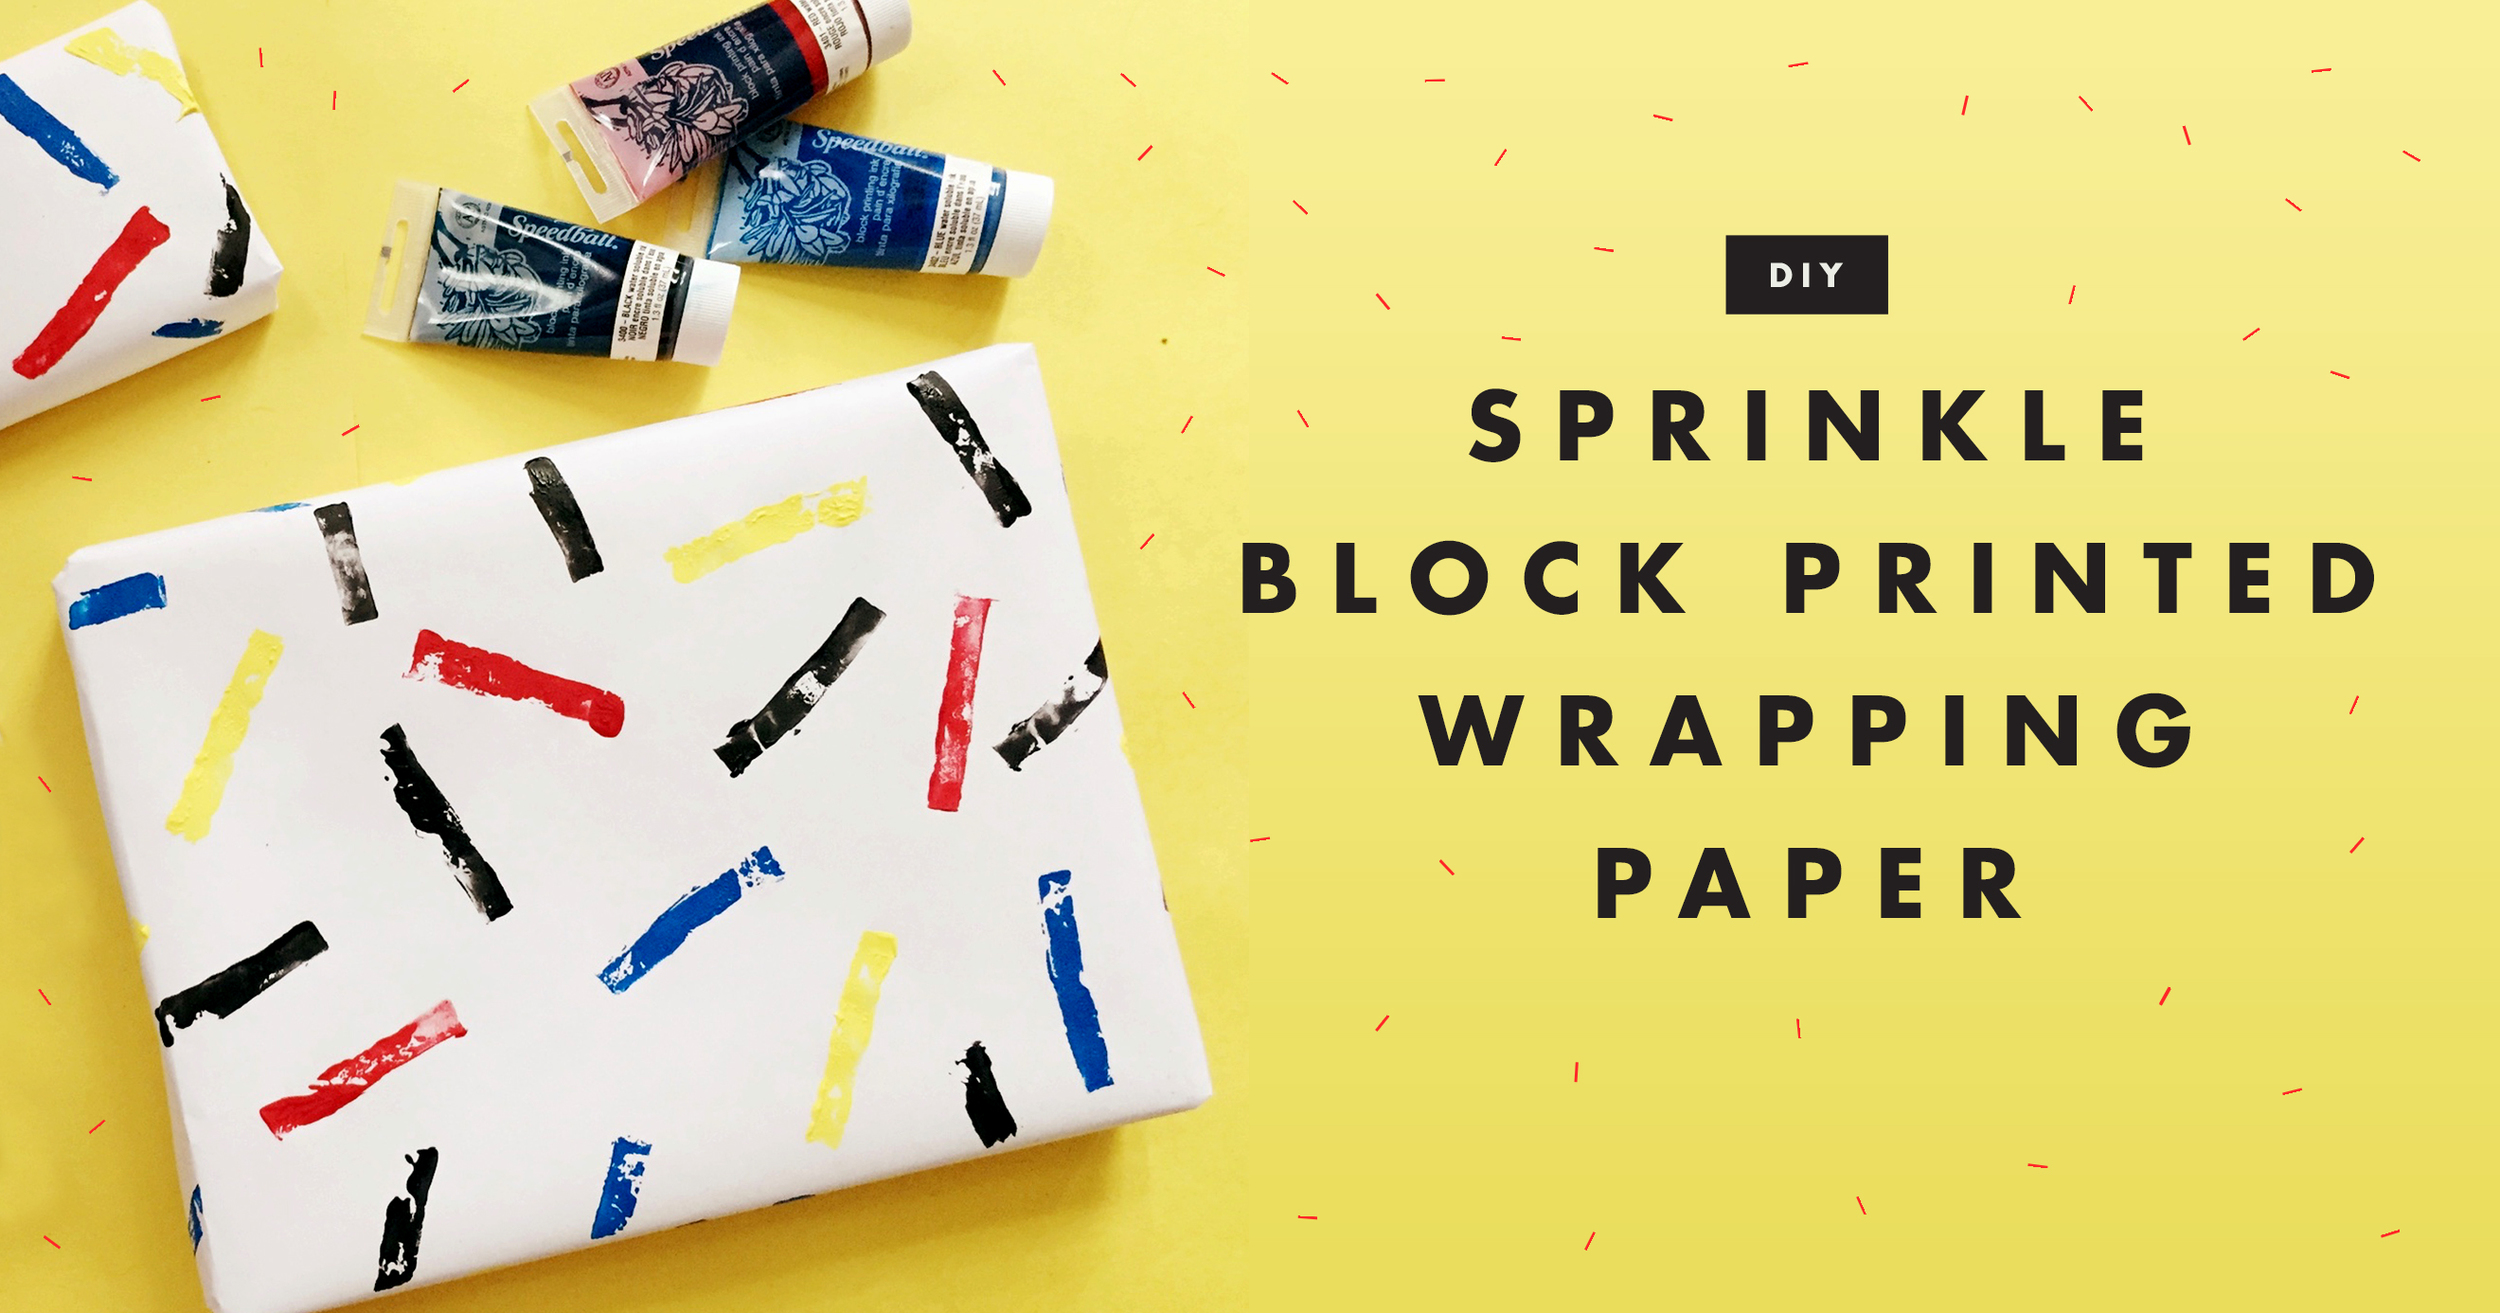 DIY: Sprinkle Block Printed Wrapping Paper | Freckle & Fair